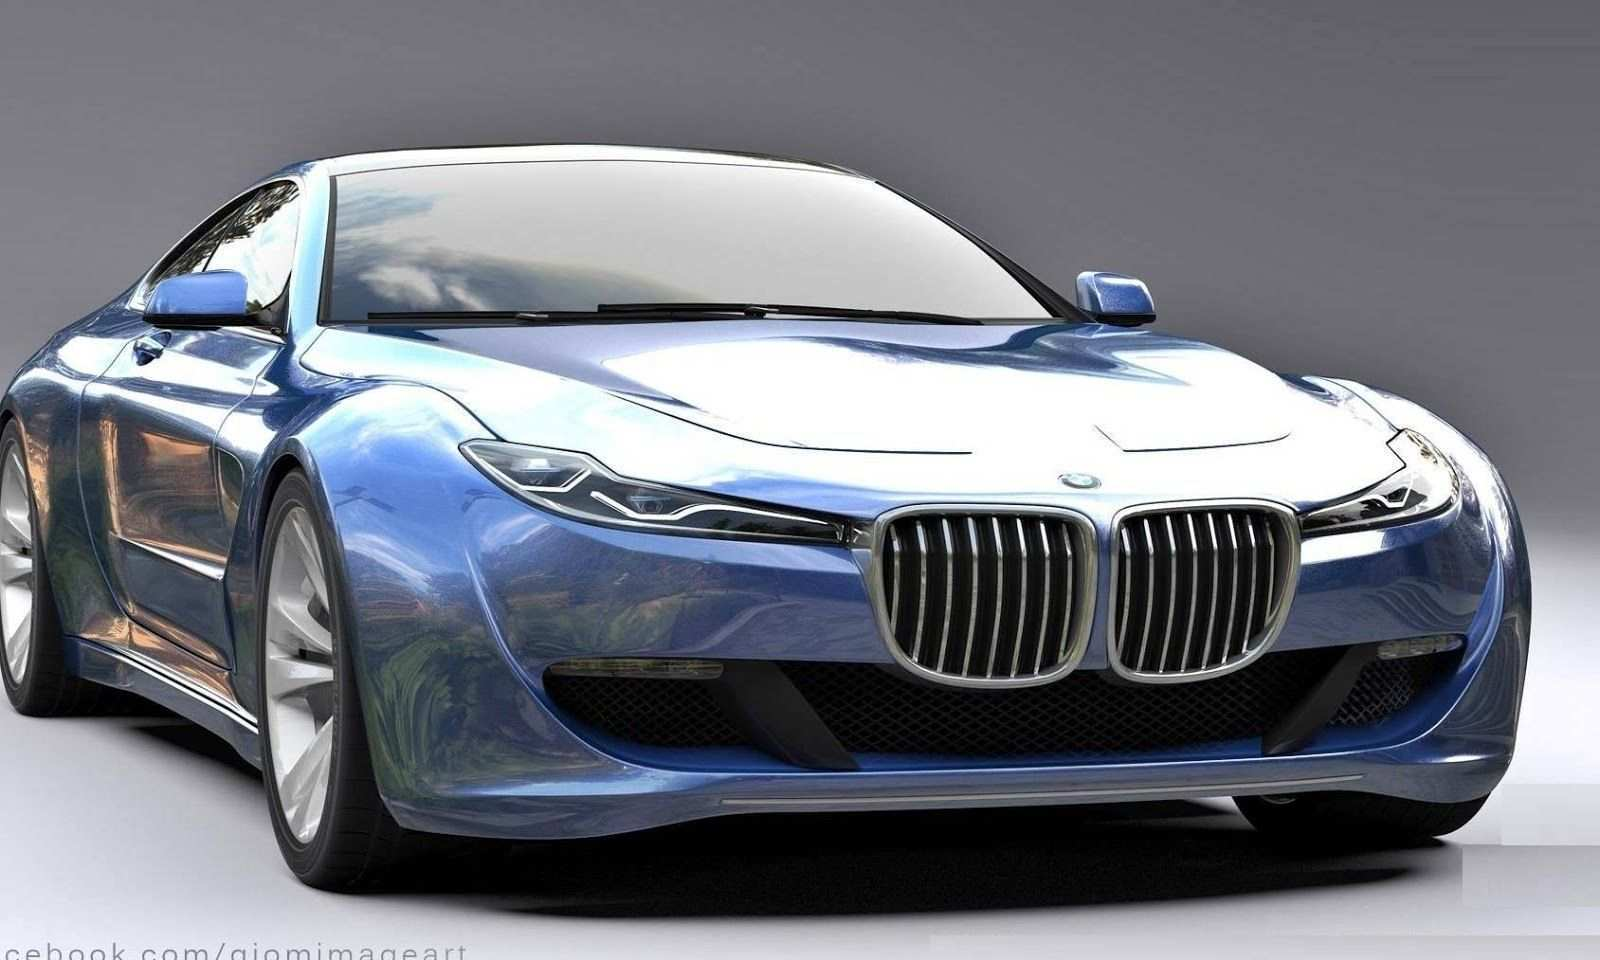 55 The Best 2020 BMW M9 Concept